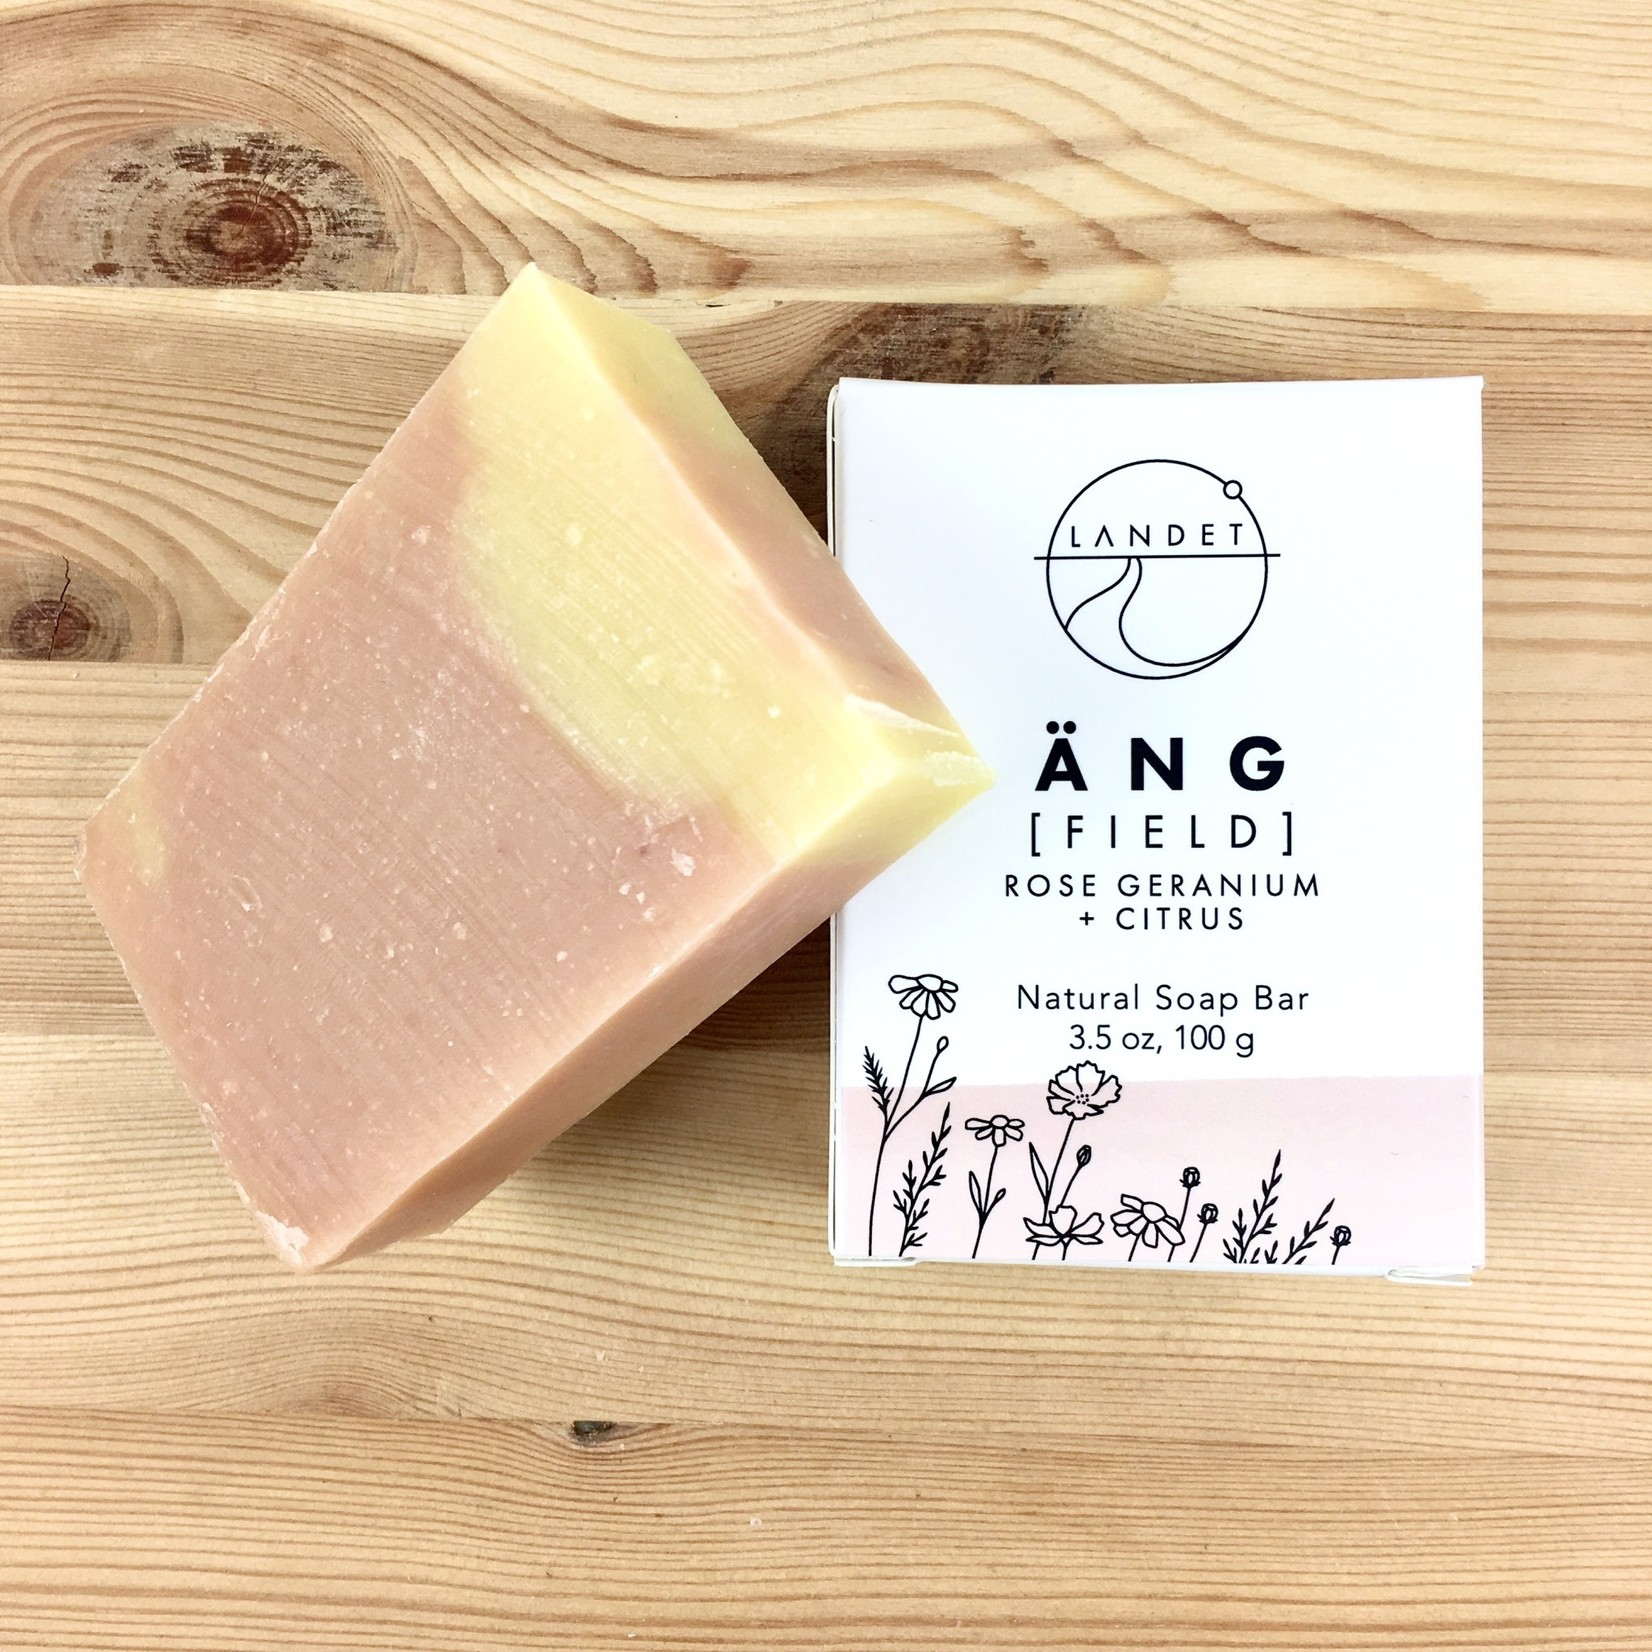 Landet Studio / KoenigCo. / Sunshine Raindrop Field (Ang): Rose Geranium + Citrus Bar Soap